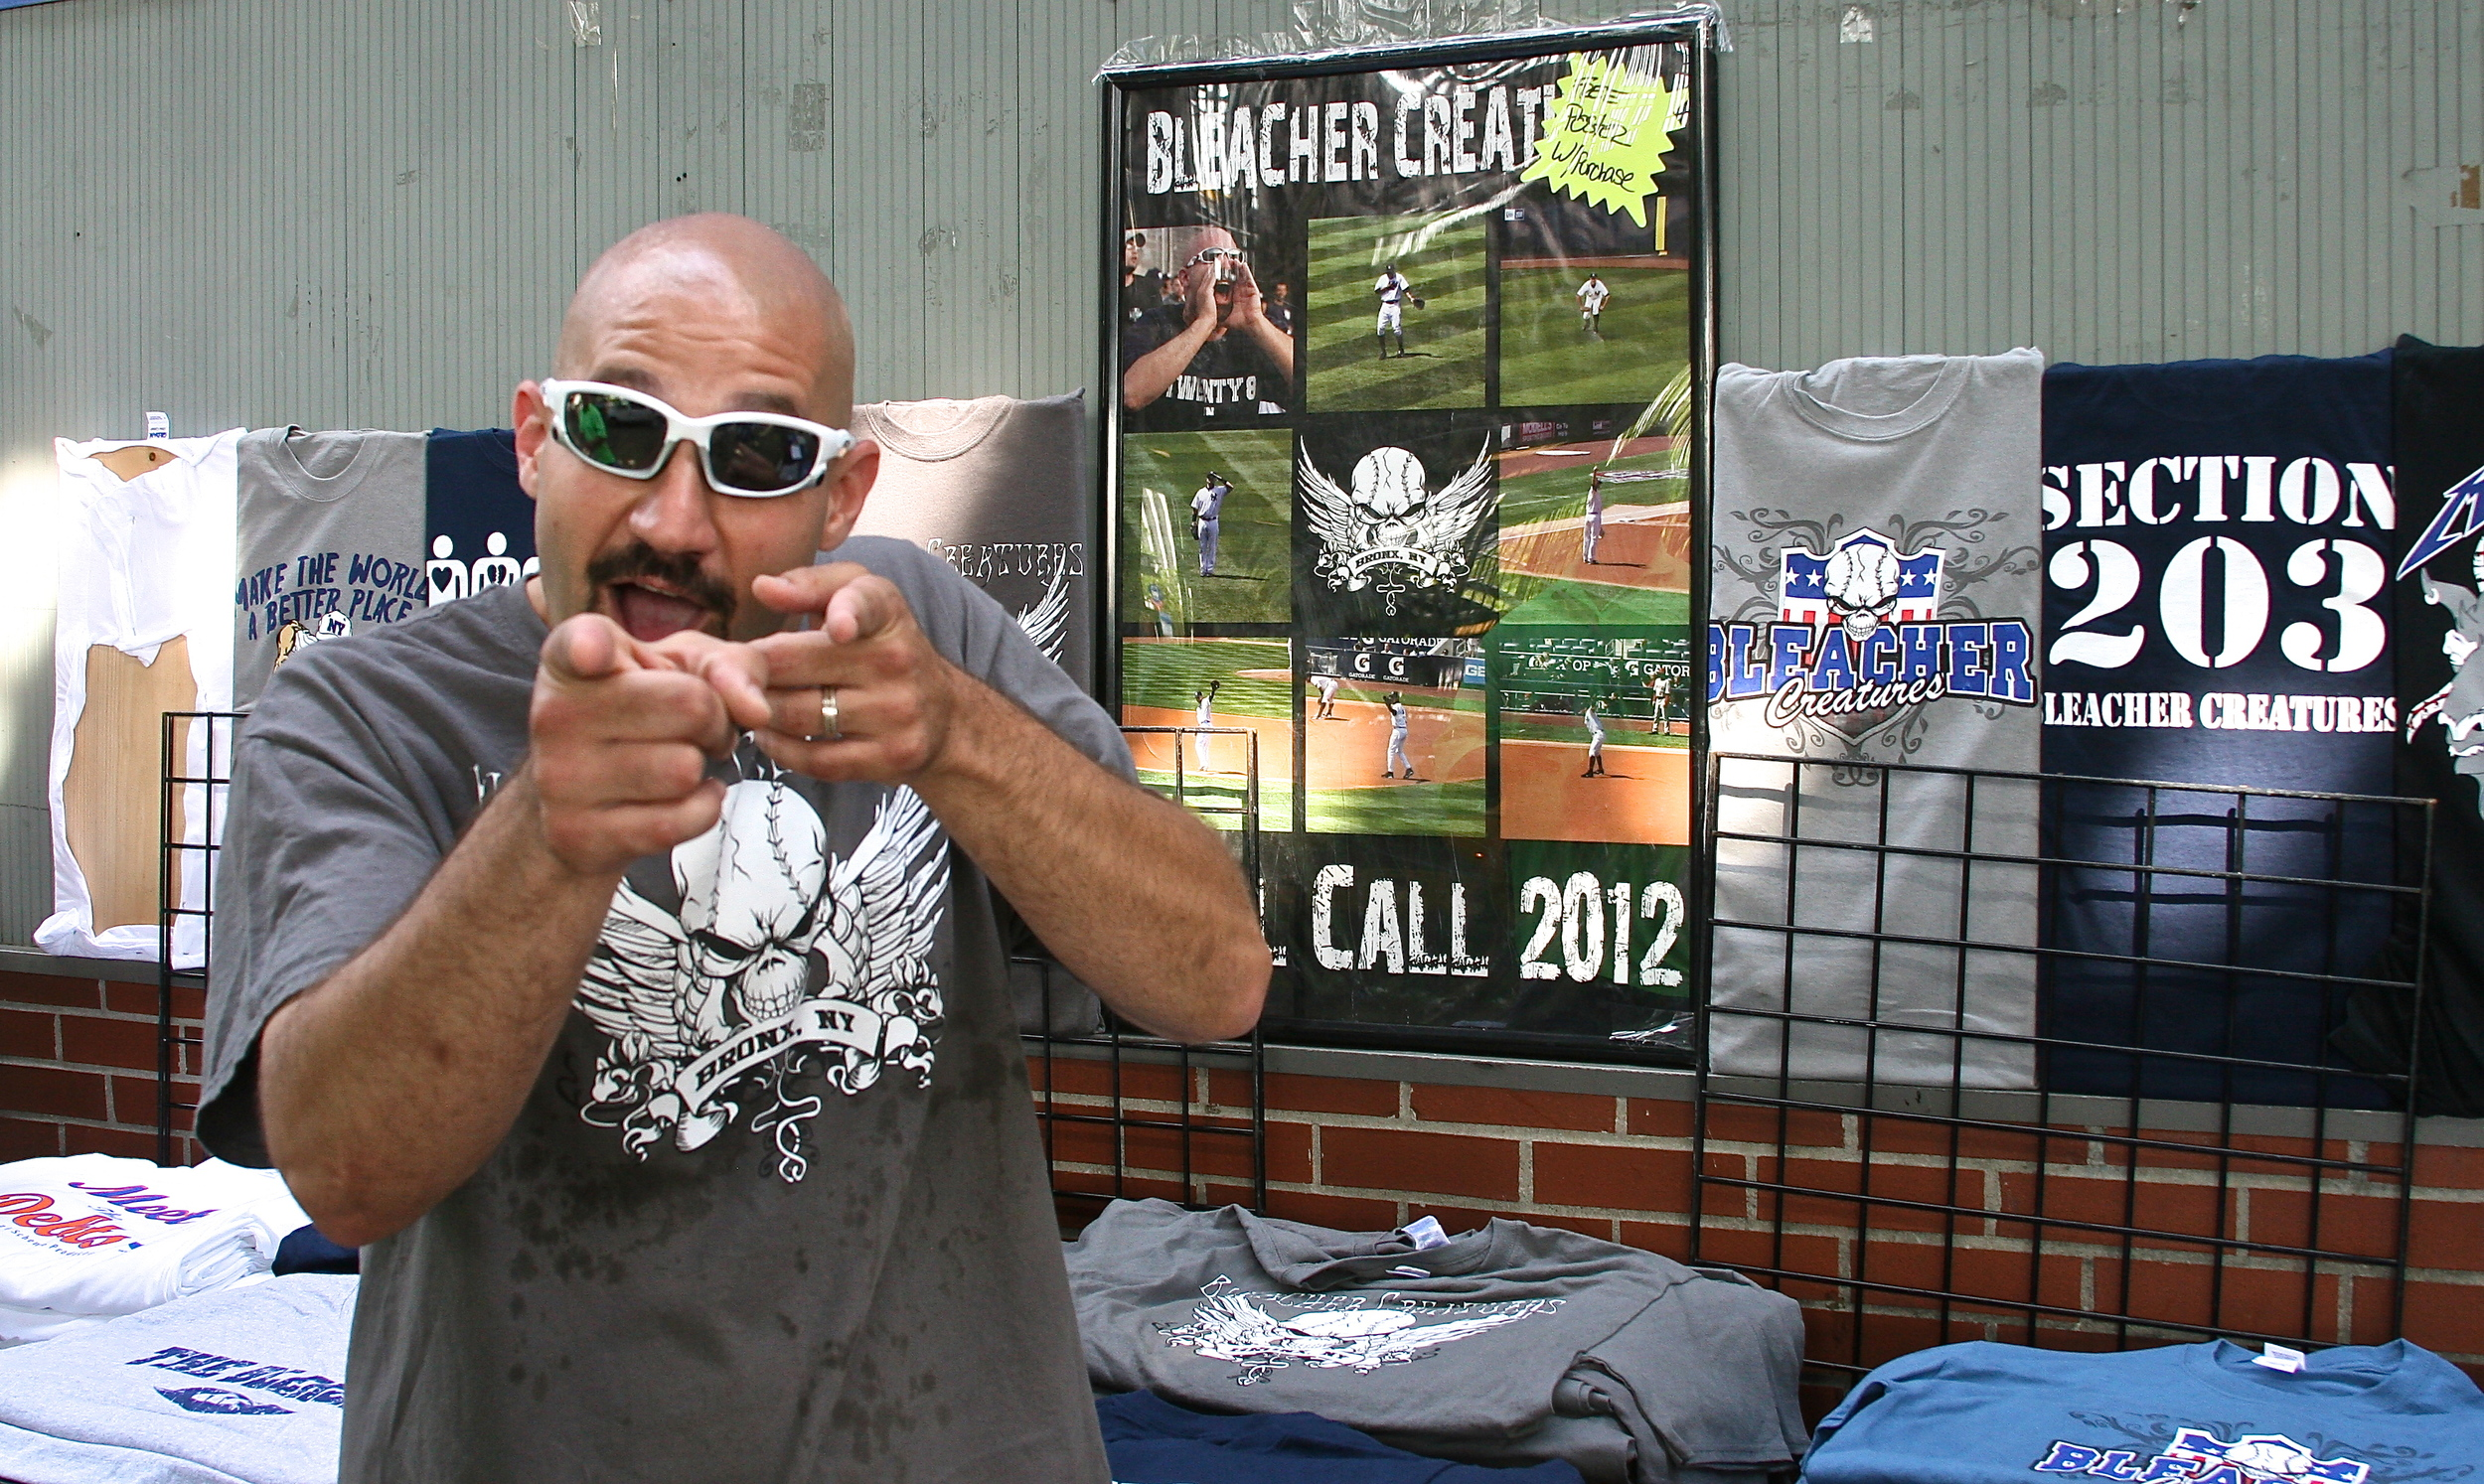 Bald Vinny outside of his t-shirt stand on River Ave.